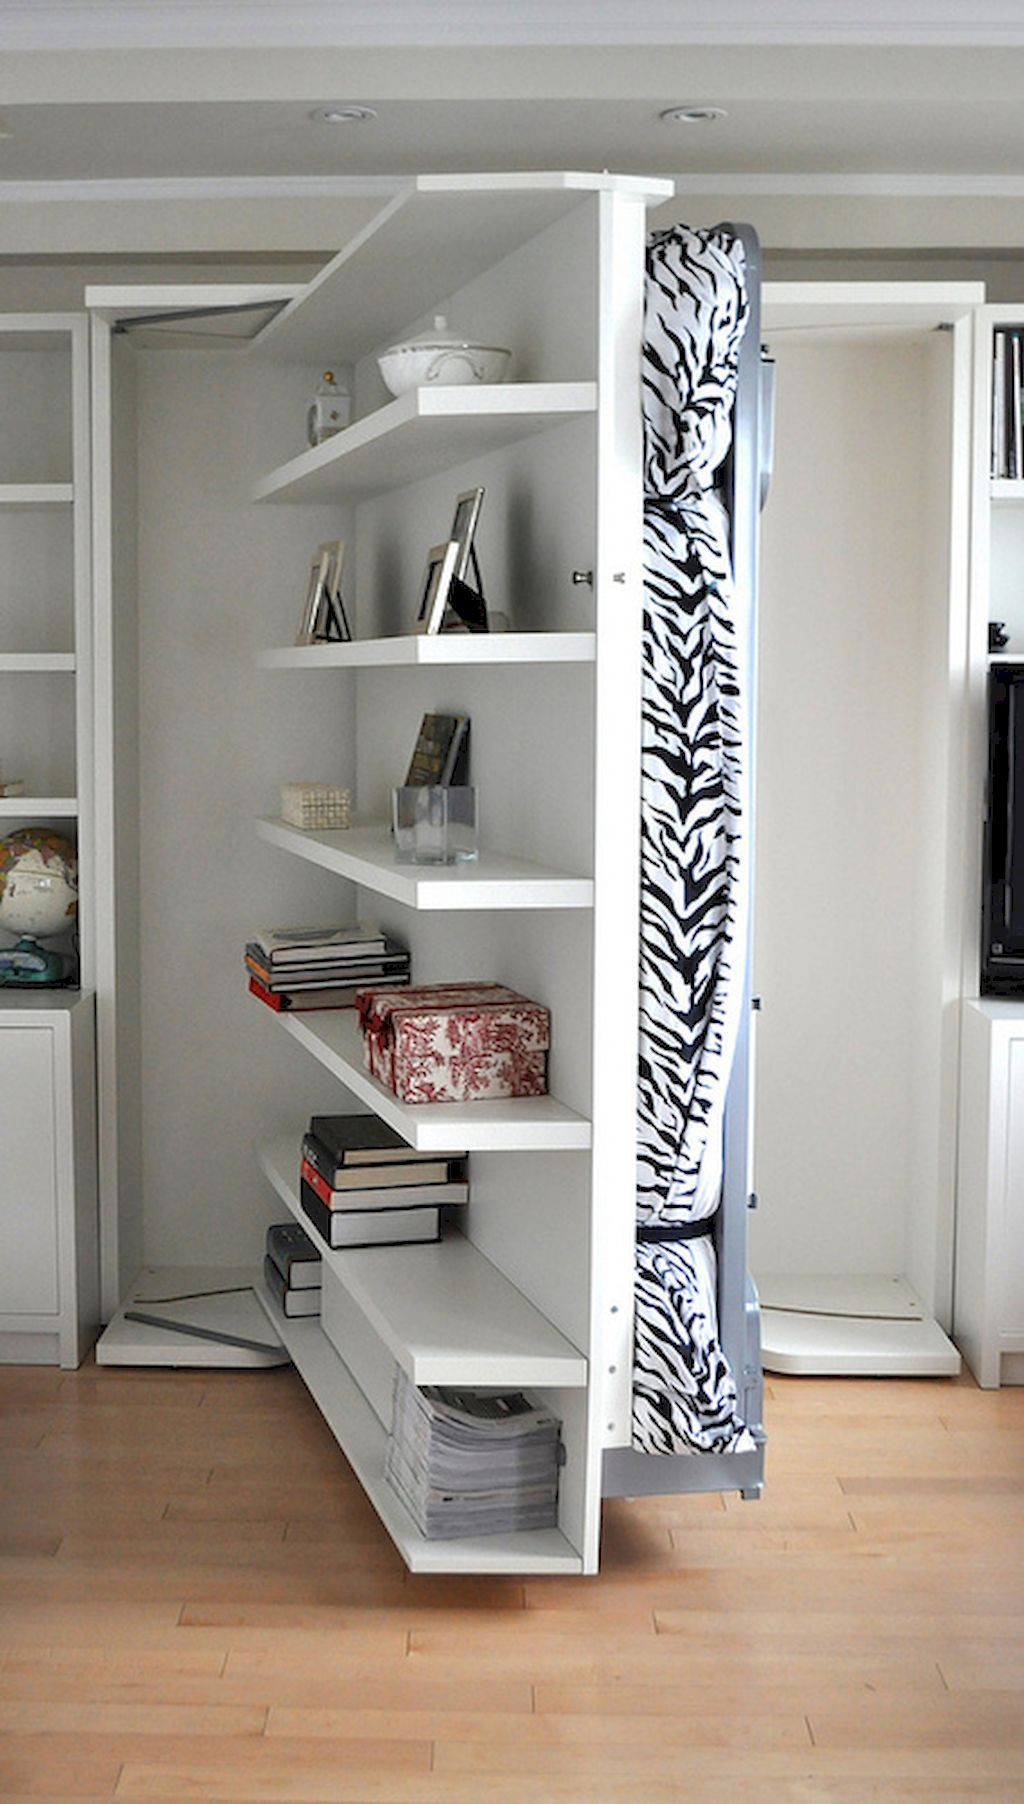 65+ Clever Storage Ideas for Small Apartment Spaces | Clever storage ...